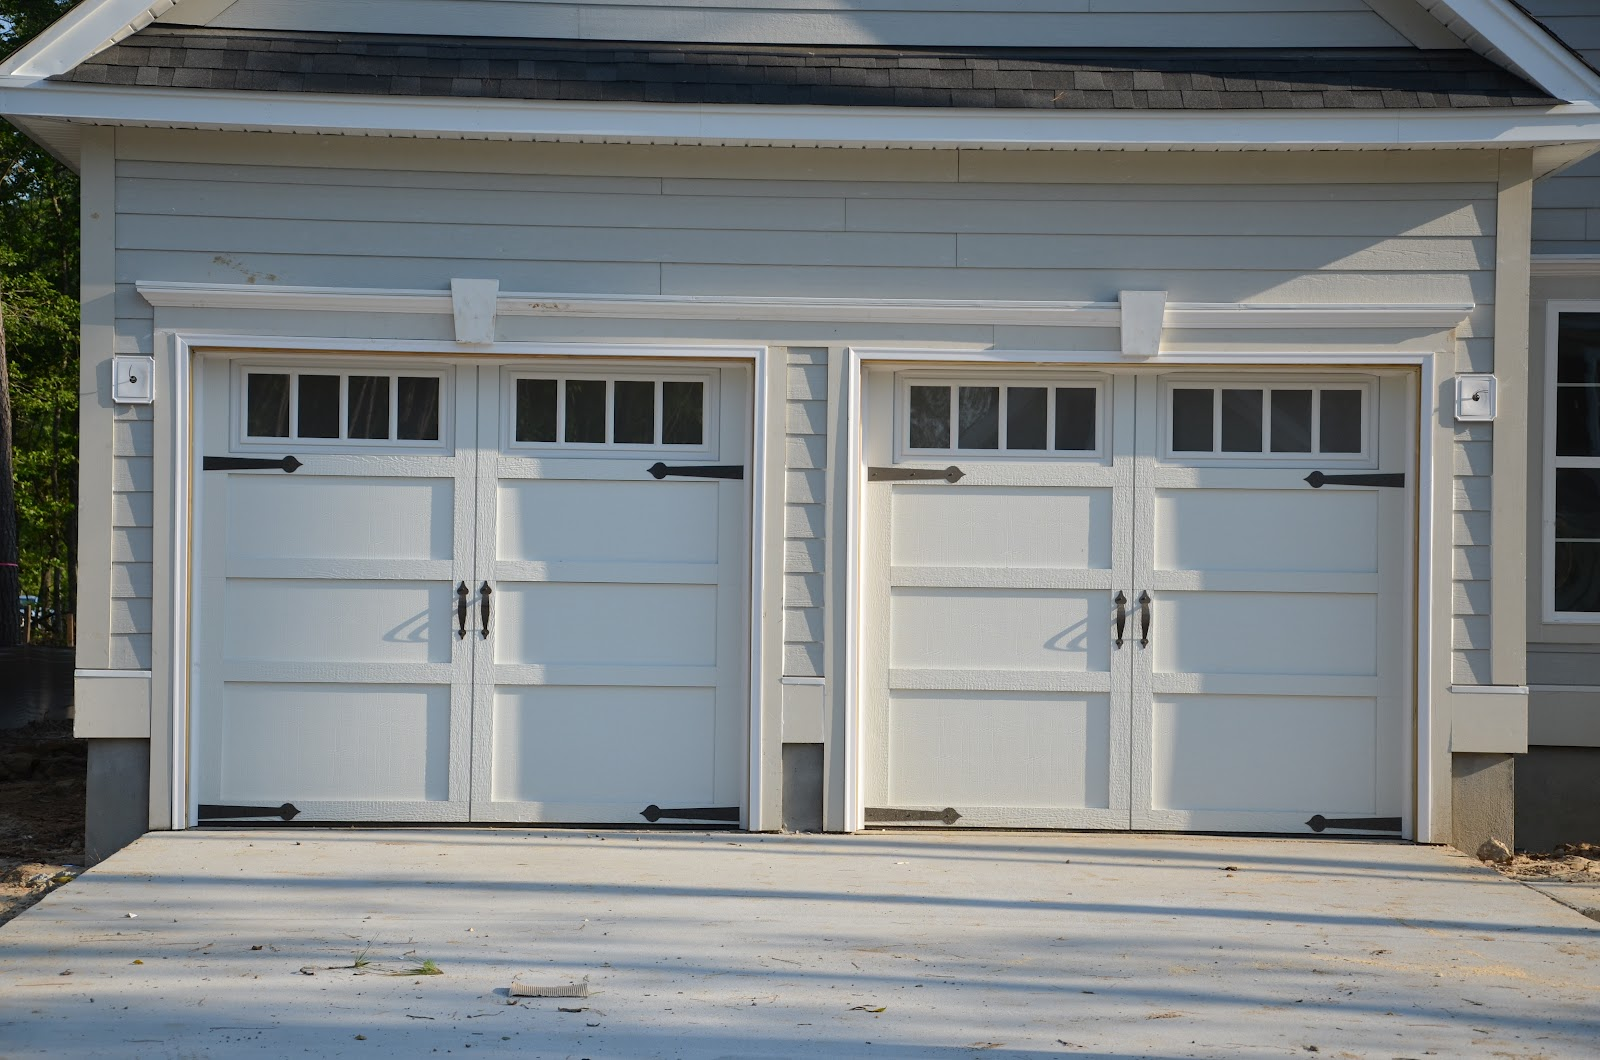 1000 images about carriage doors on pinterest carriage for Carriage garages